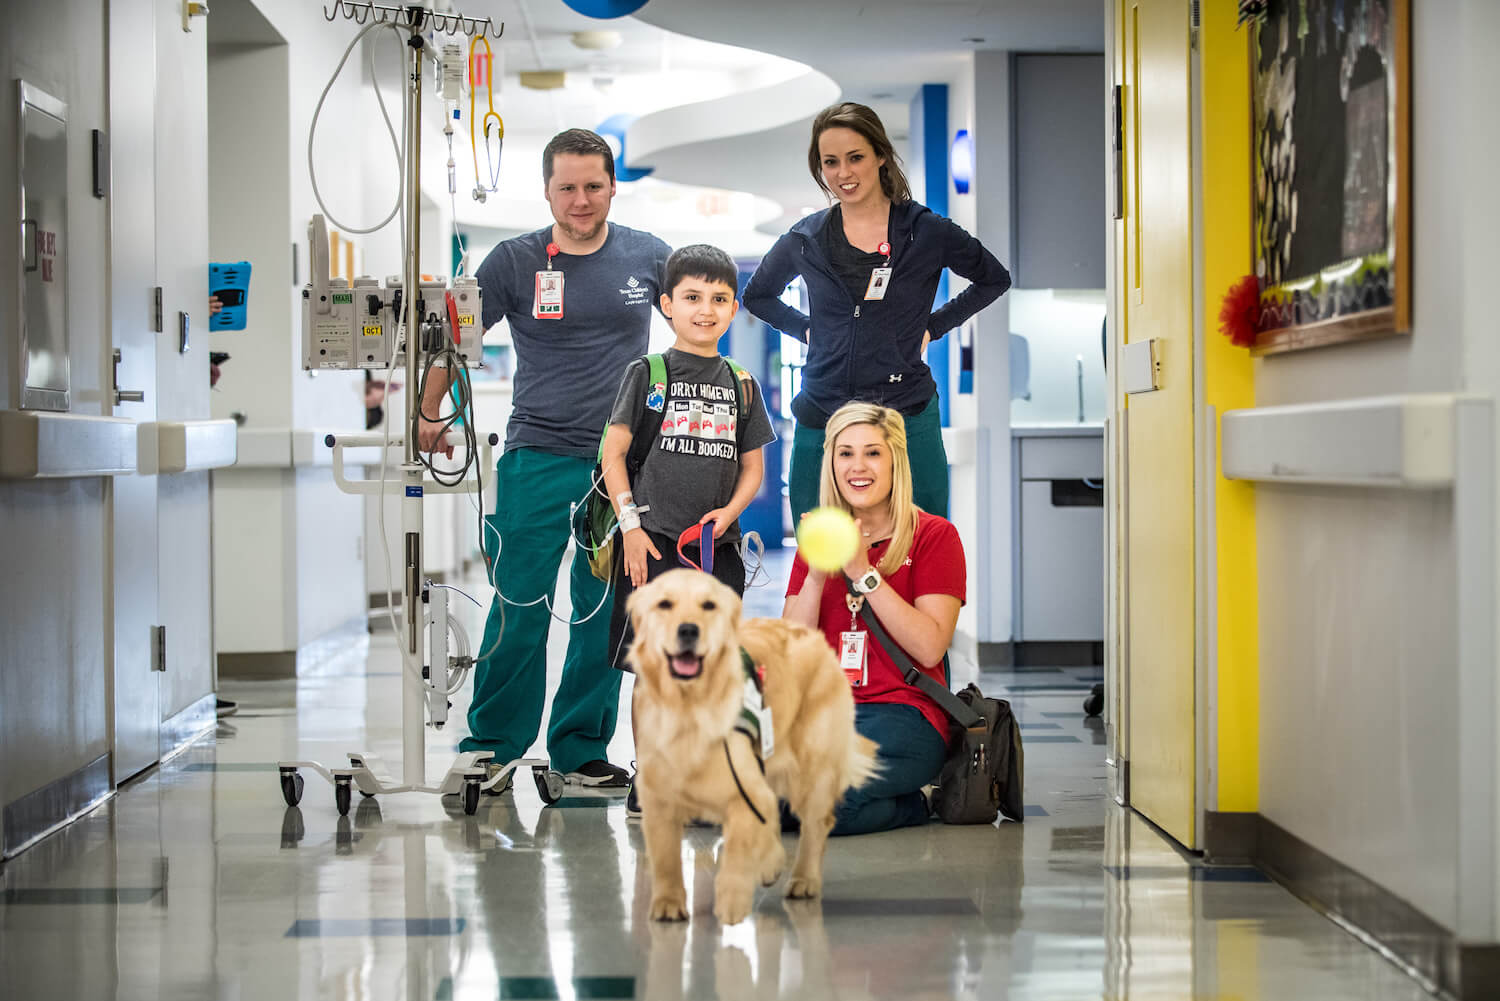 As she will do in Legacy Tower, Bailey spent time with a heart patient during her first week of work. Photo: Allen S. Kramer/Texas Children's Hospital